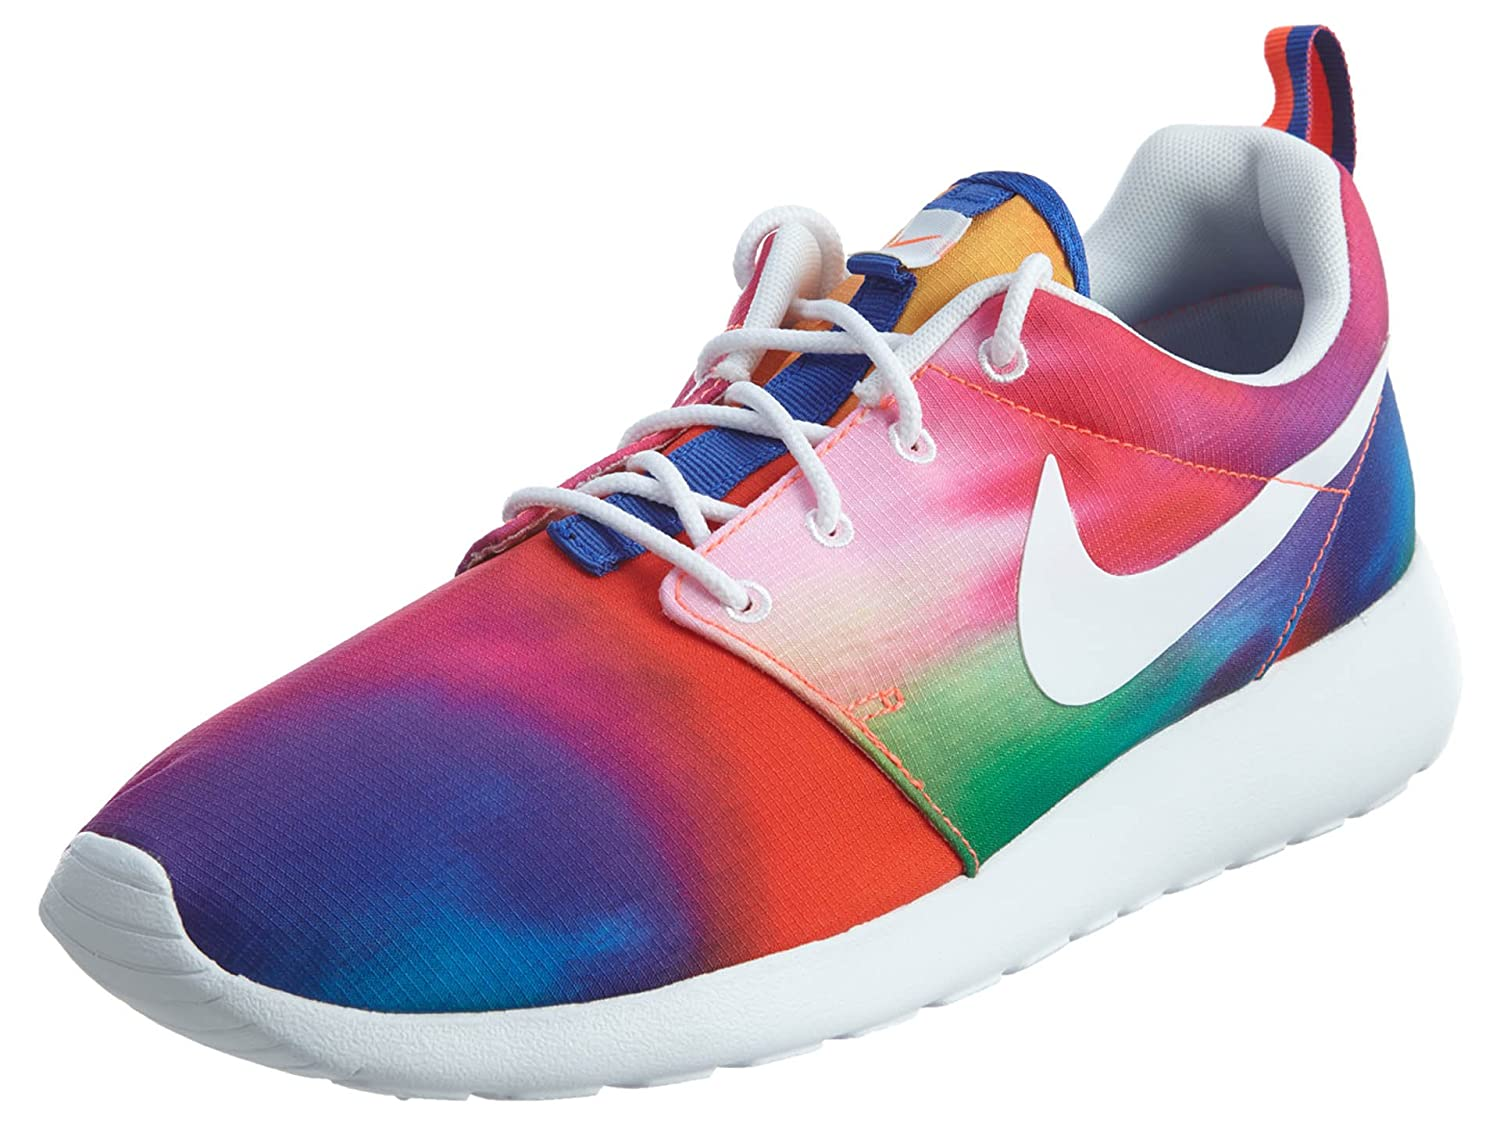 new arrival 9fe7e fe49b Nike Rosherun Print Mens Running Shoes 655206-518 Court Purple White-Total  Crimson 13 M US  Buy Online at Low Prices in India - Amazon.in